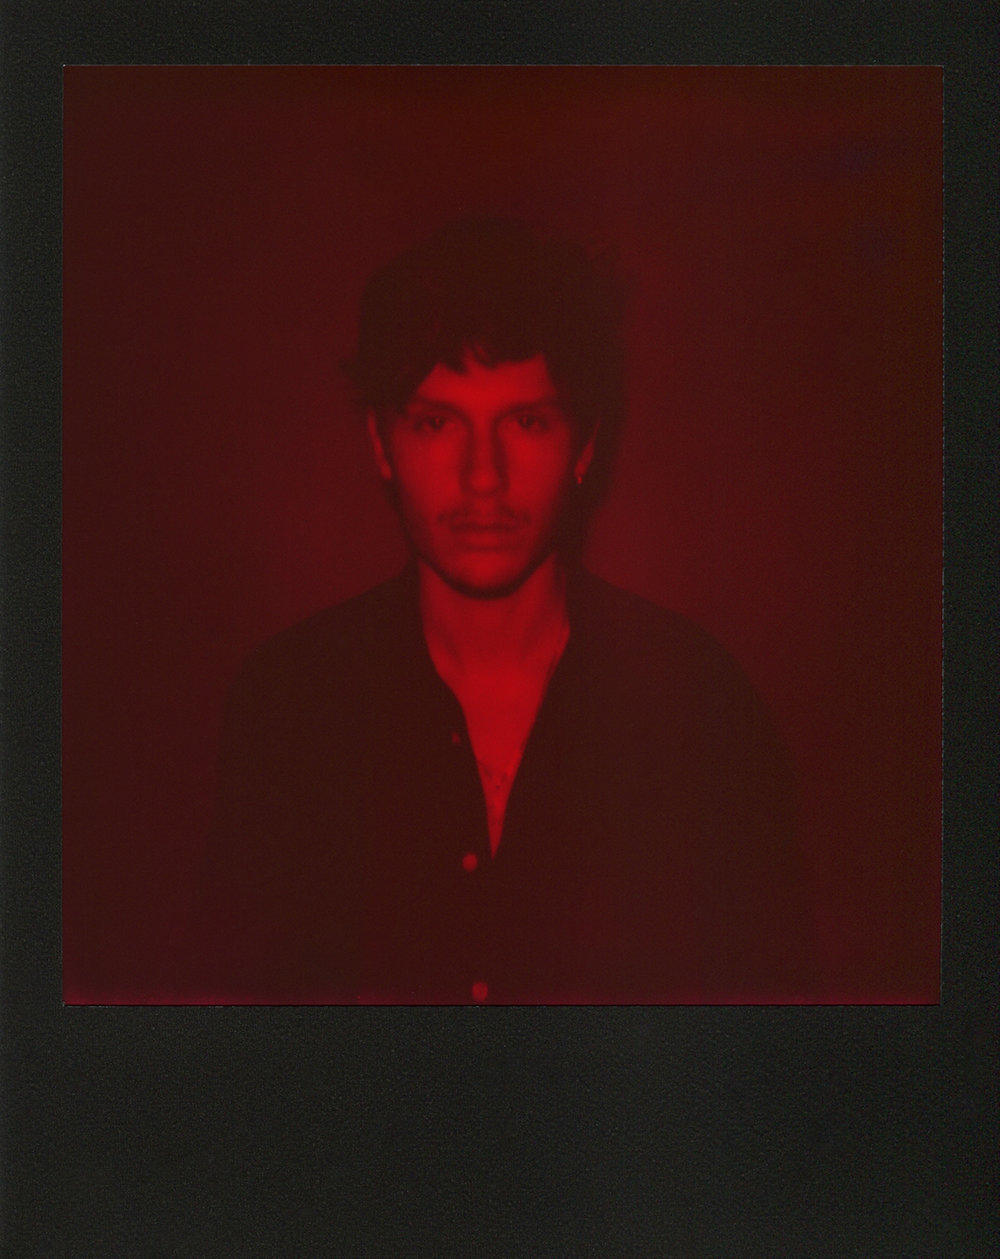 Cruz-Red-Polaroid-casenruiz.jpg